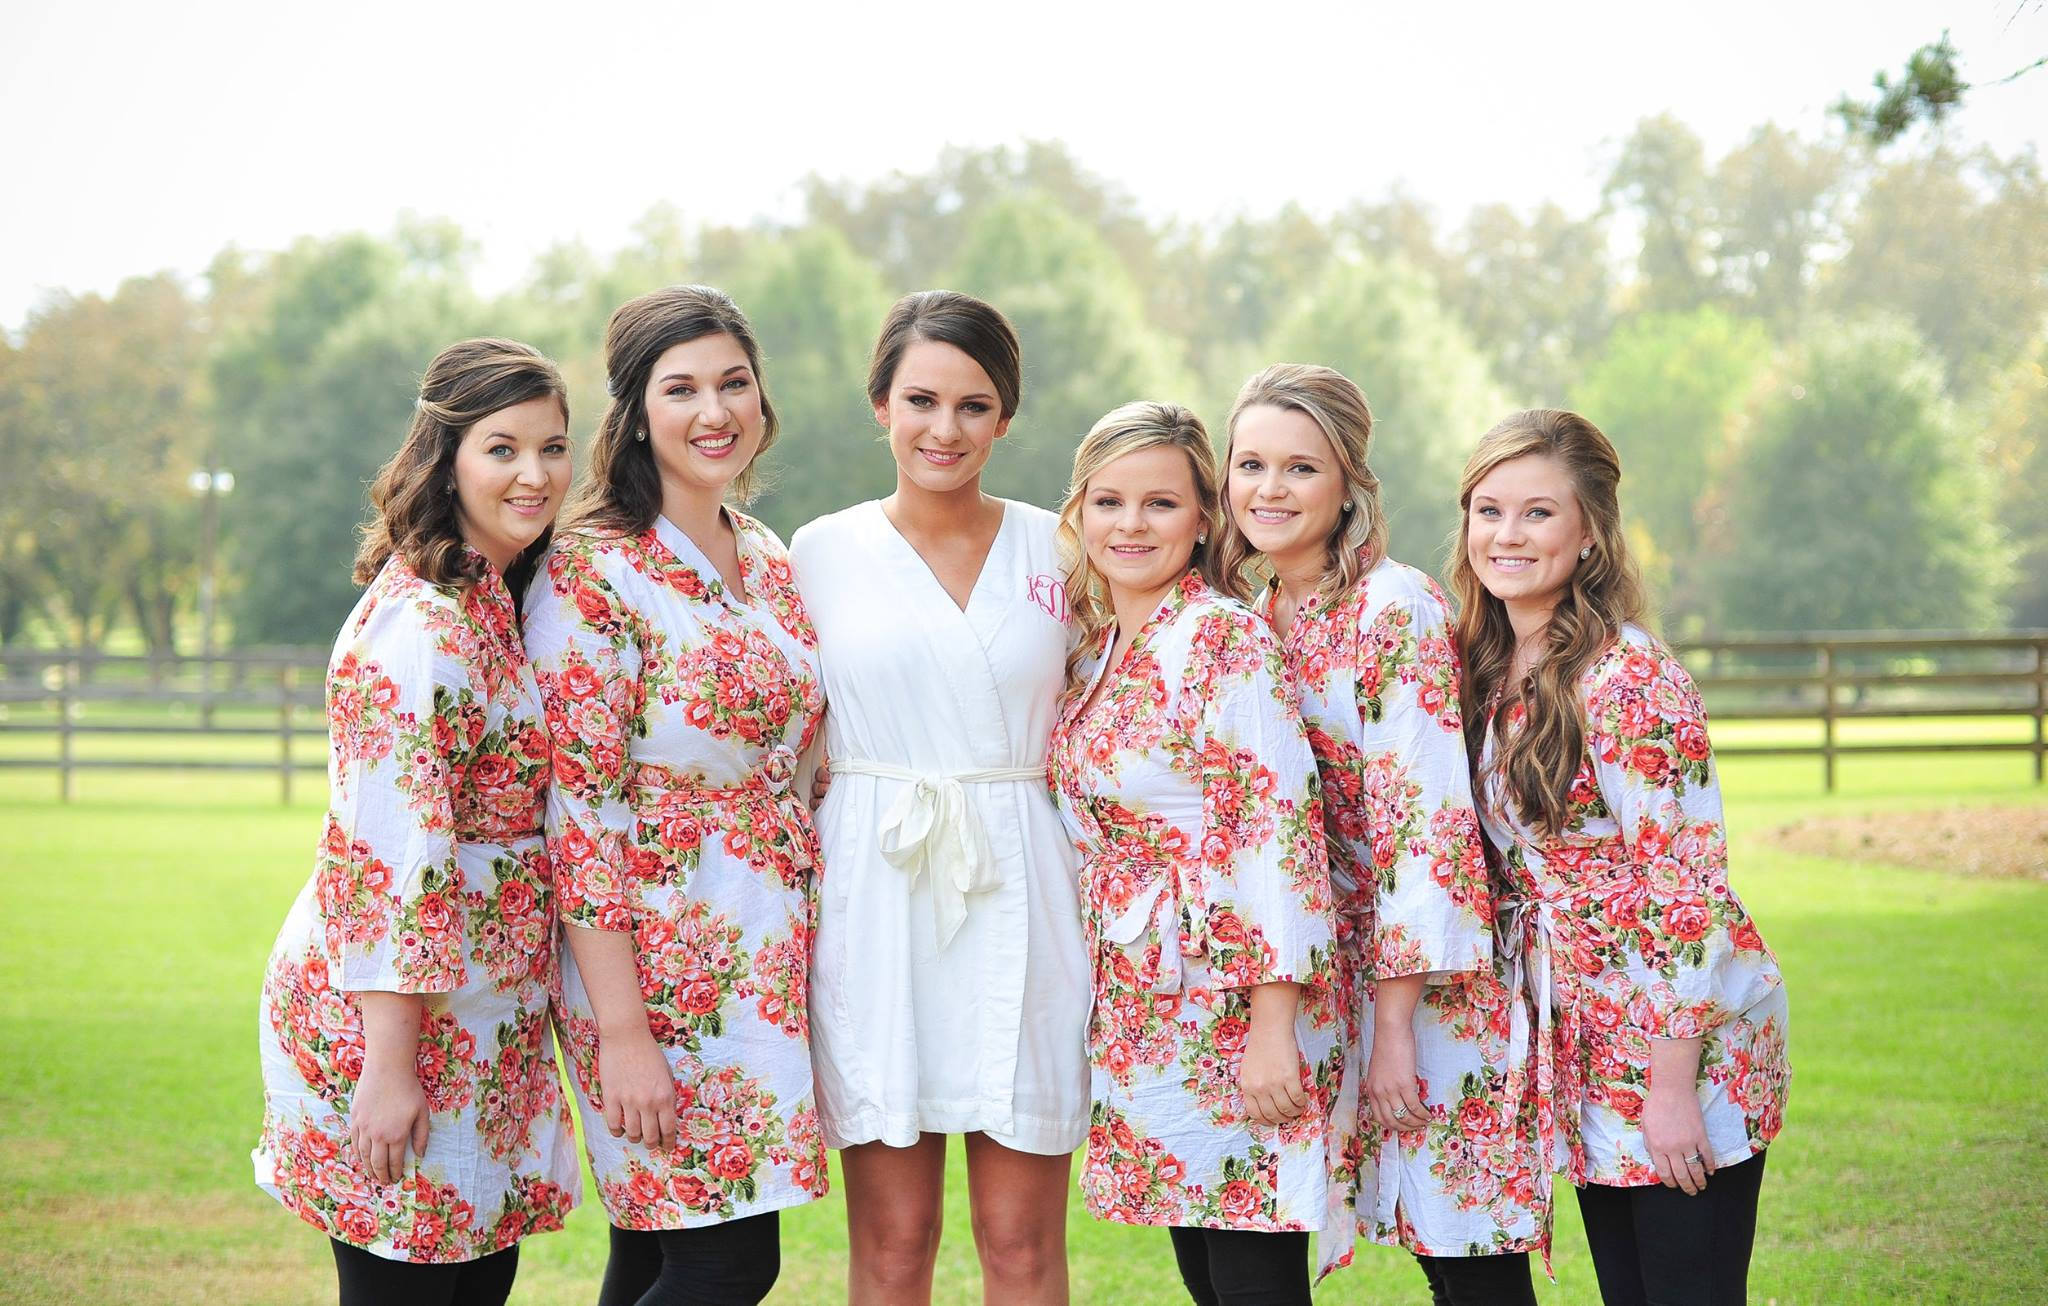 Bridesmaid robes coral floral at Southern Bridle Farms with the beautiful bride.